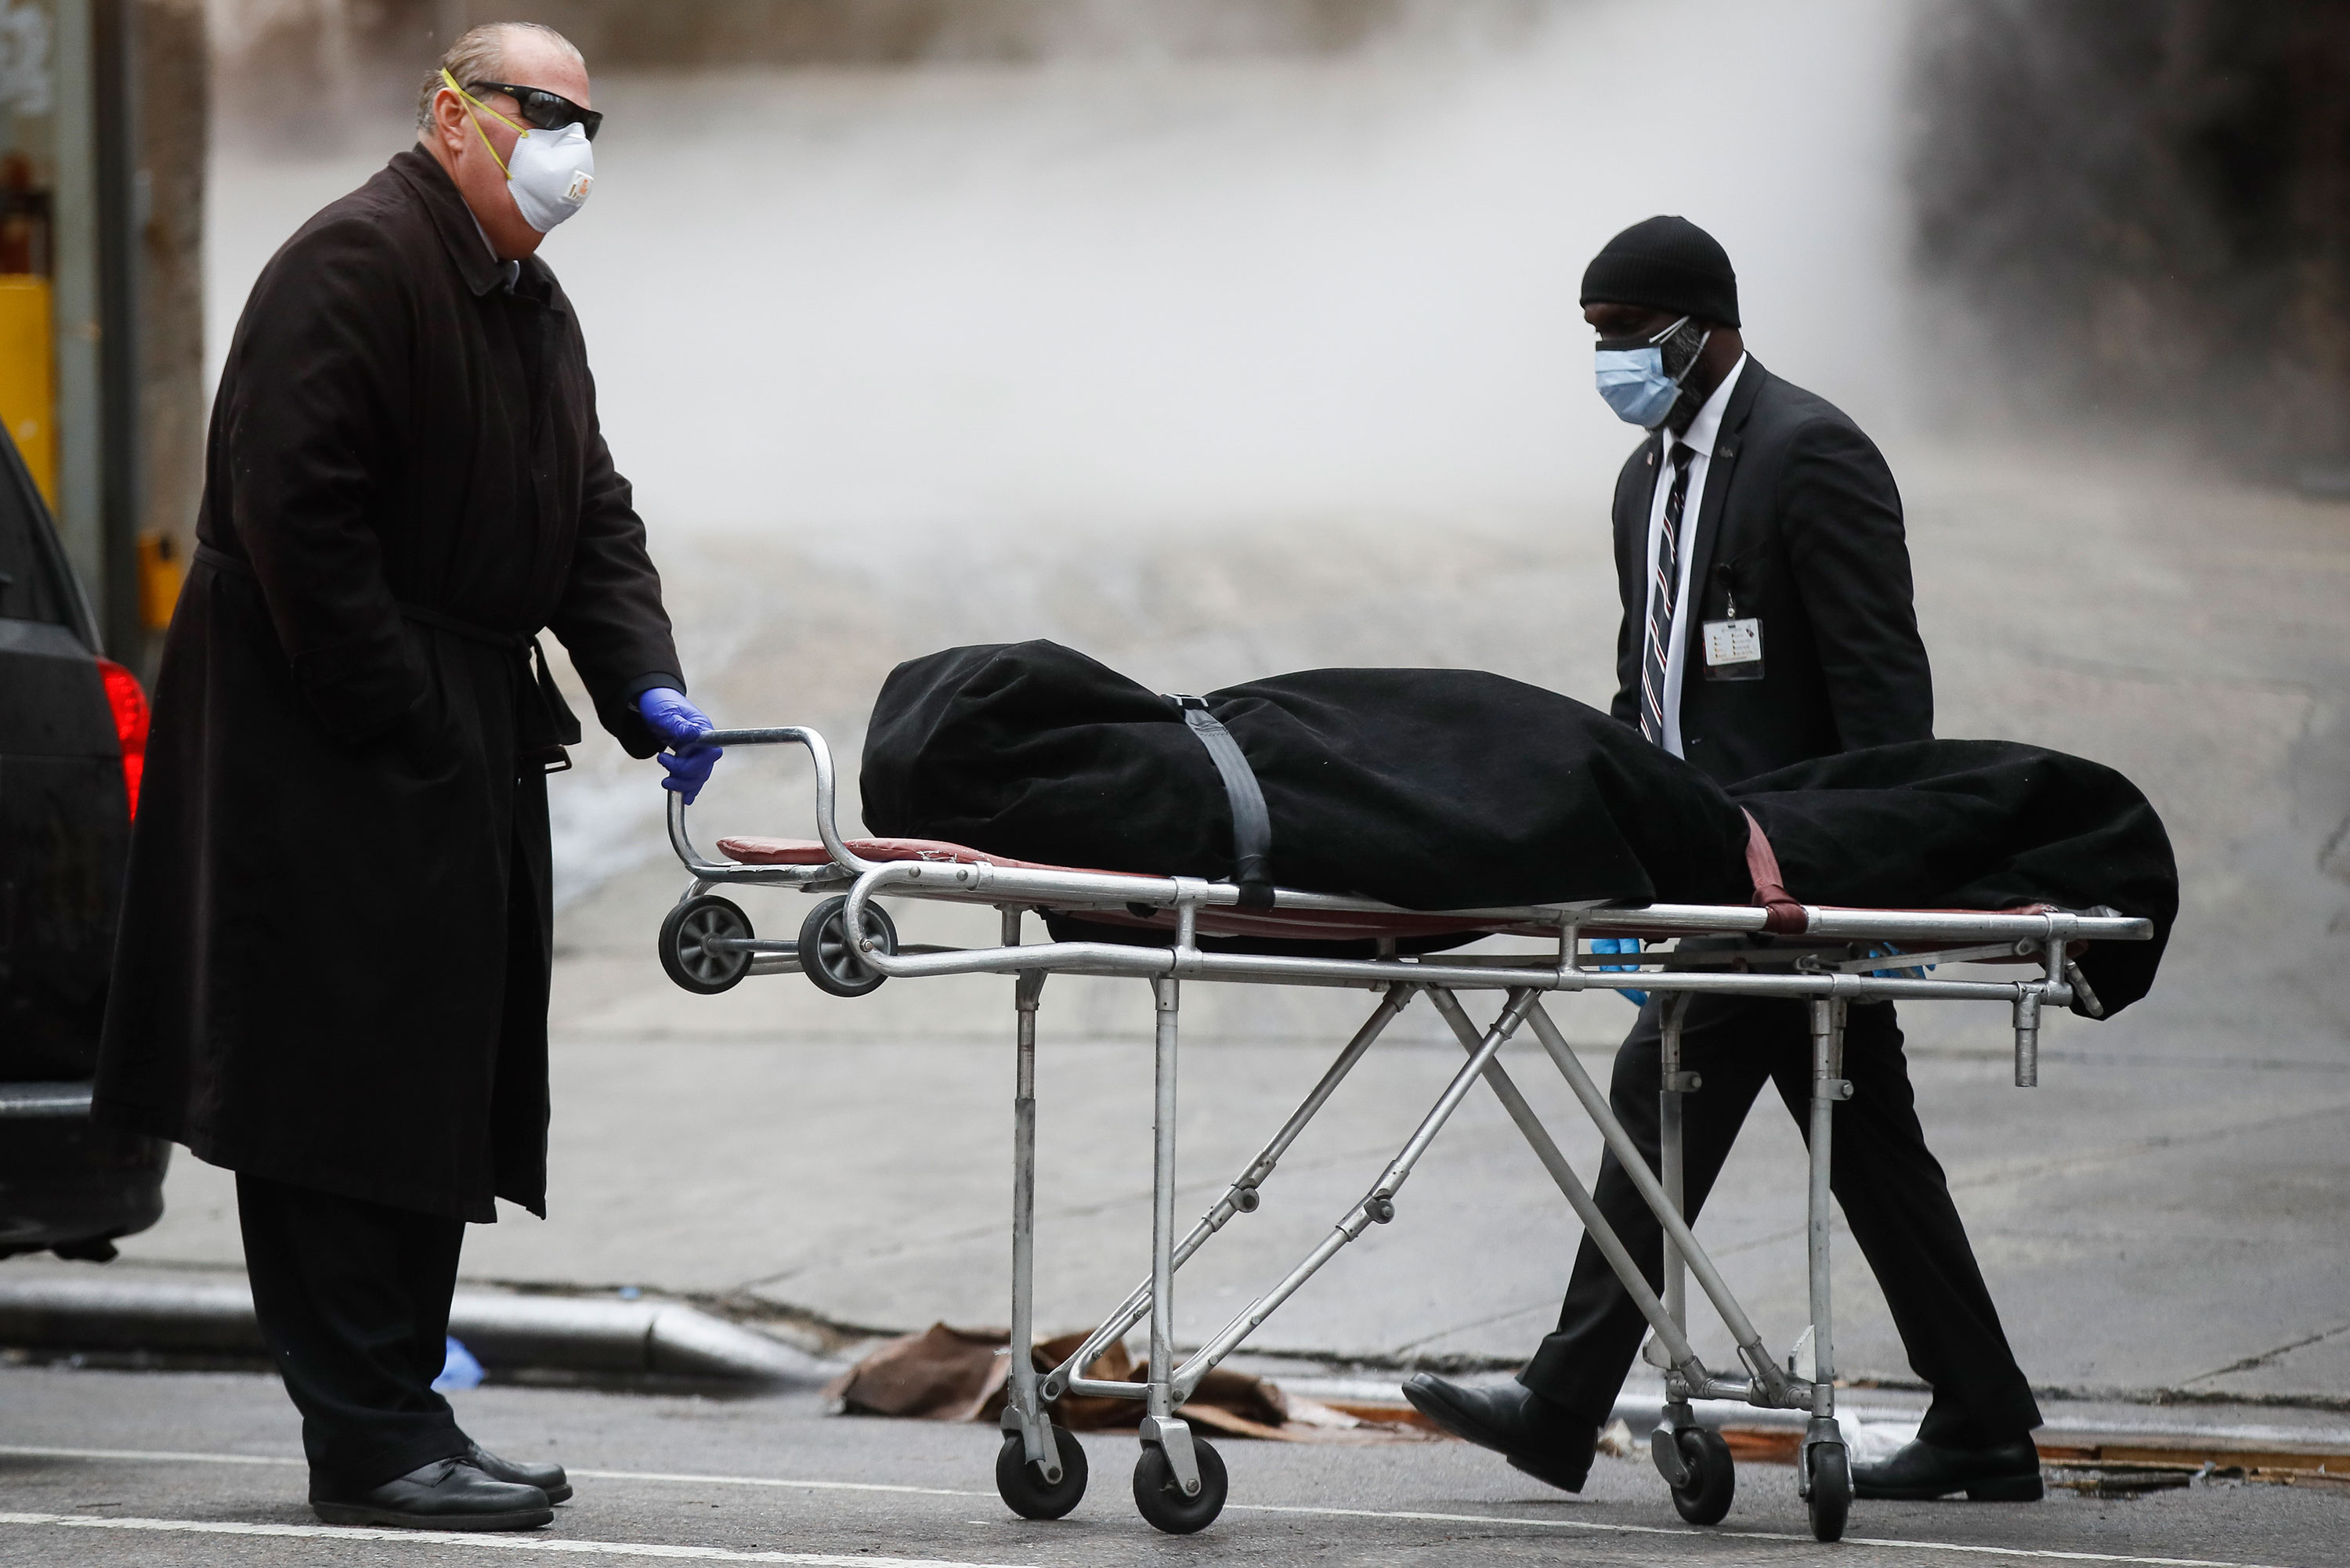 A funeral director collects a body from The Brooklyn Hospital Center in New York on April 9.